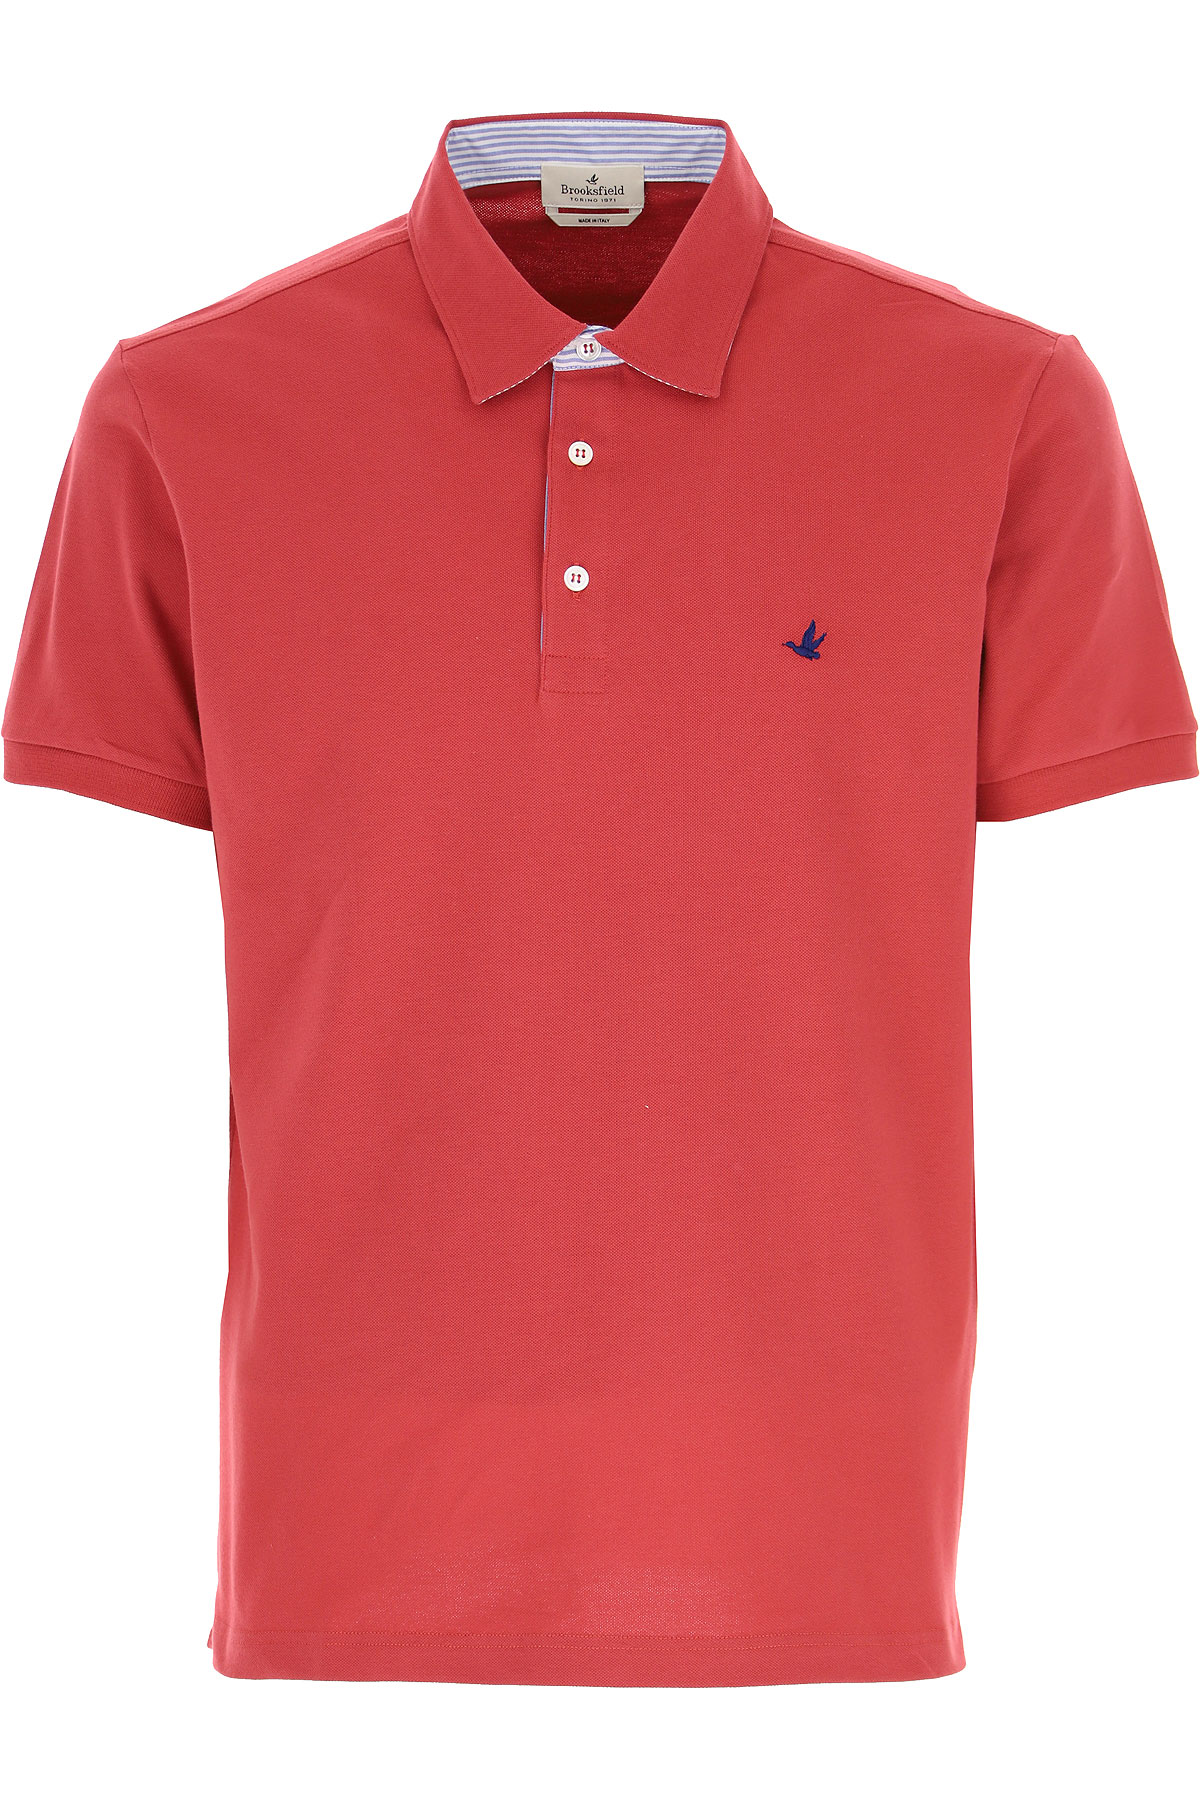 Brooksfield Polo Shirt for Men On Sale, Red, Cotton, 2019, L M XL XXL XXXL